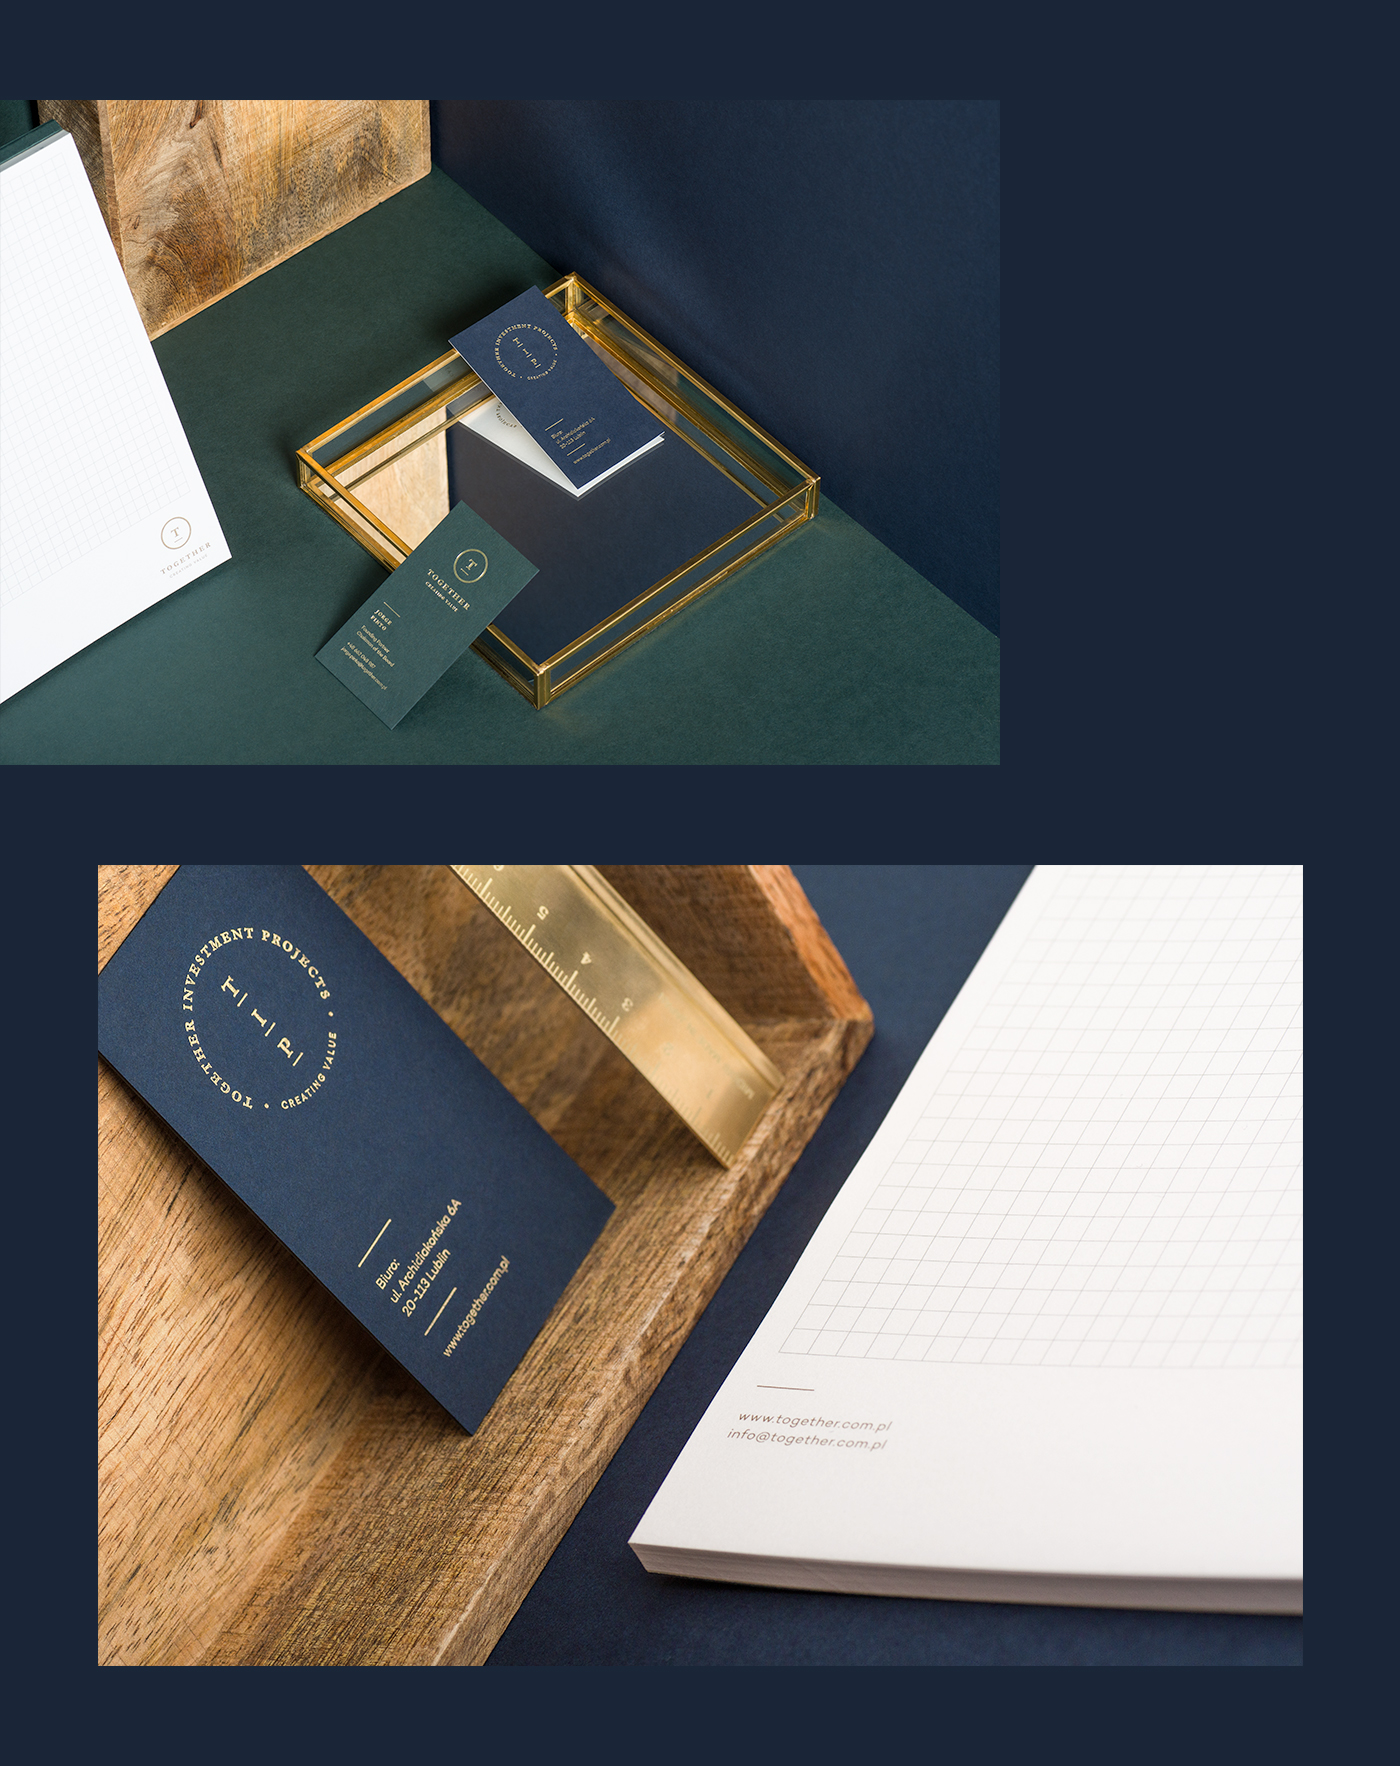 branding  logo Stationery security partnership trust Investment gold hotstamping business